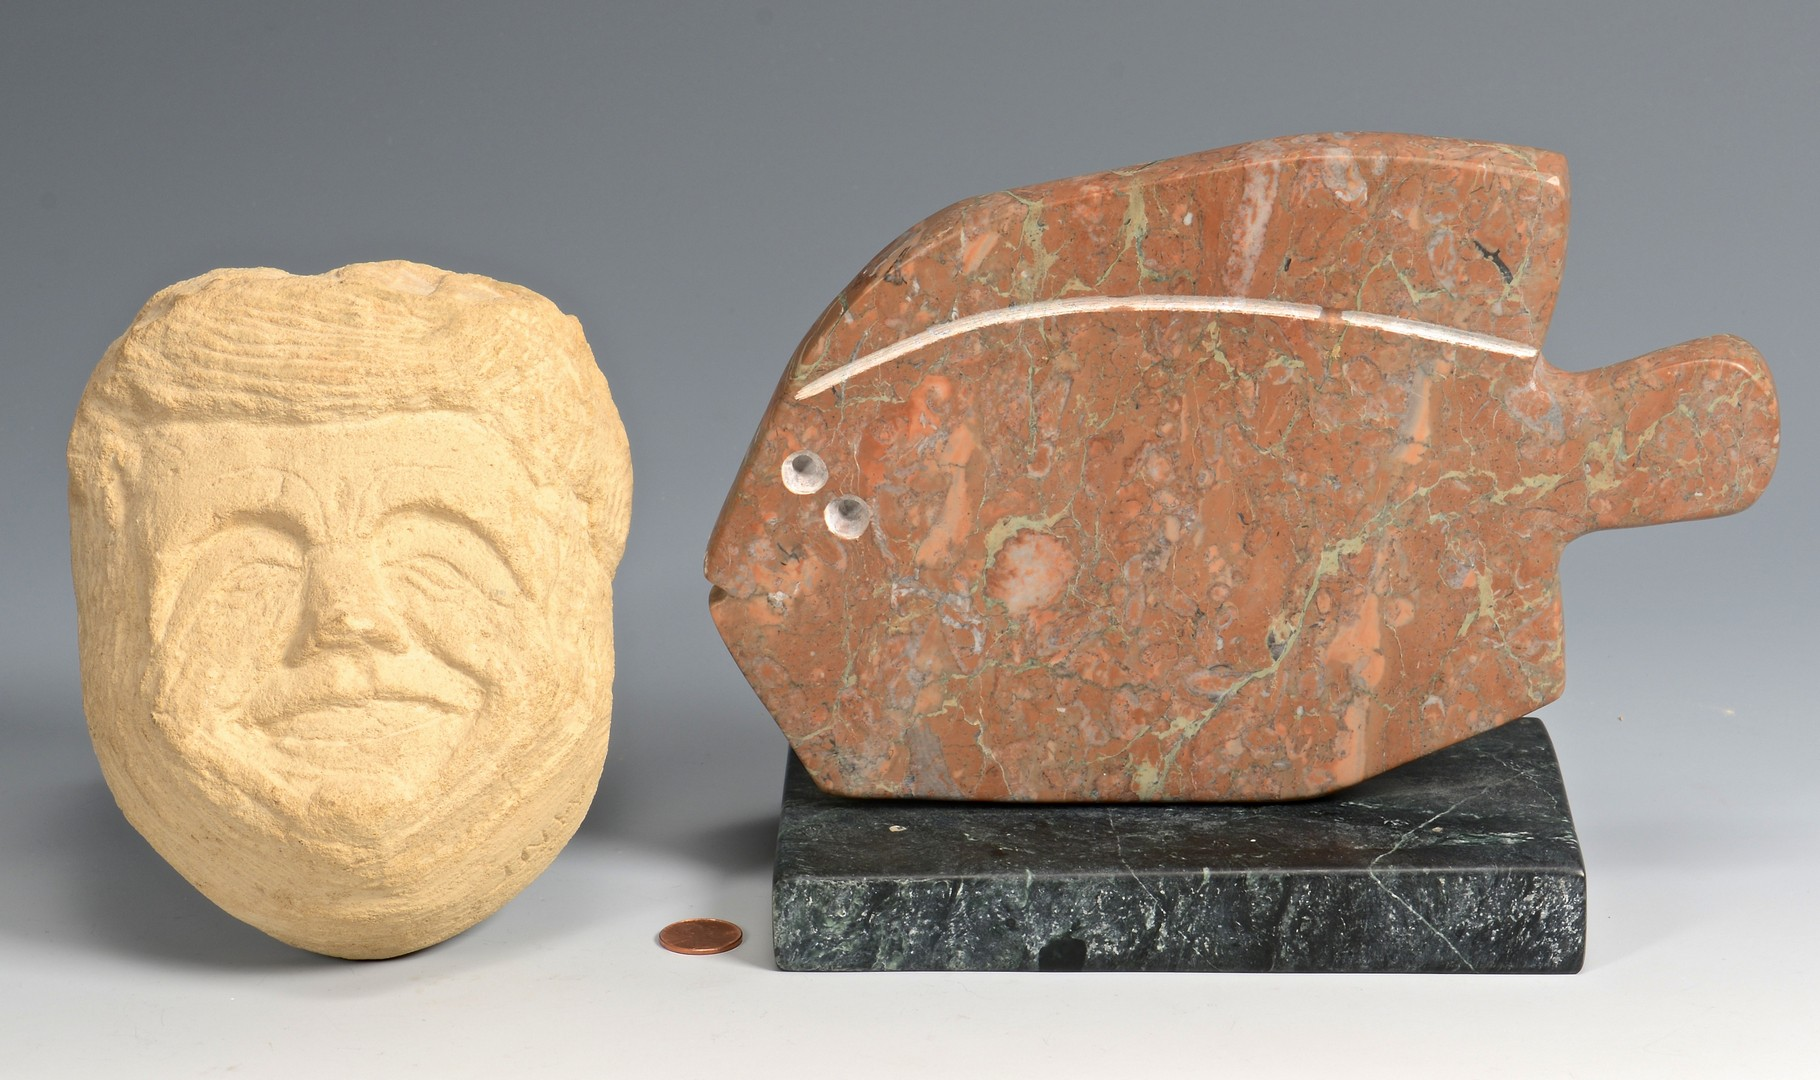 Lot 779: 2 Stone Sculptures, Bill Ralston and JFK Face